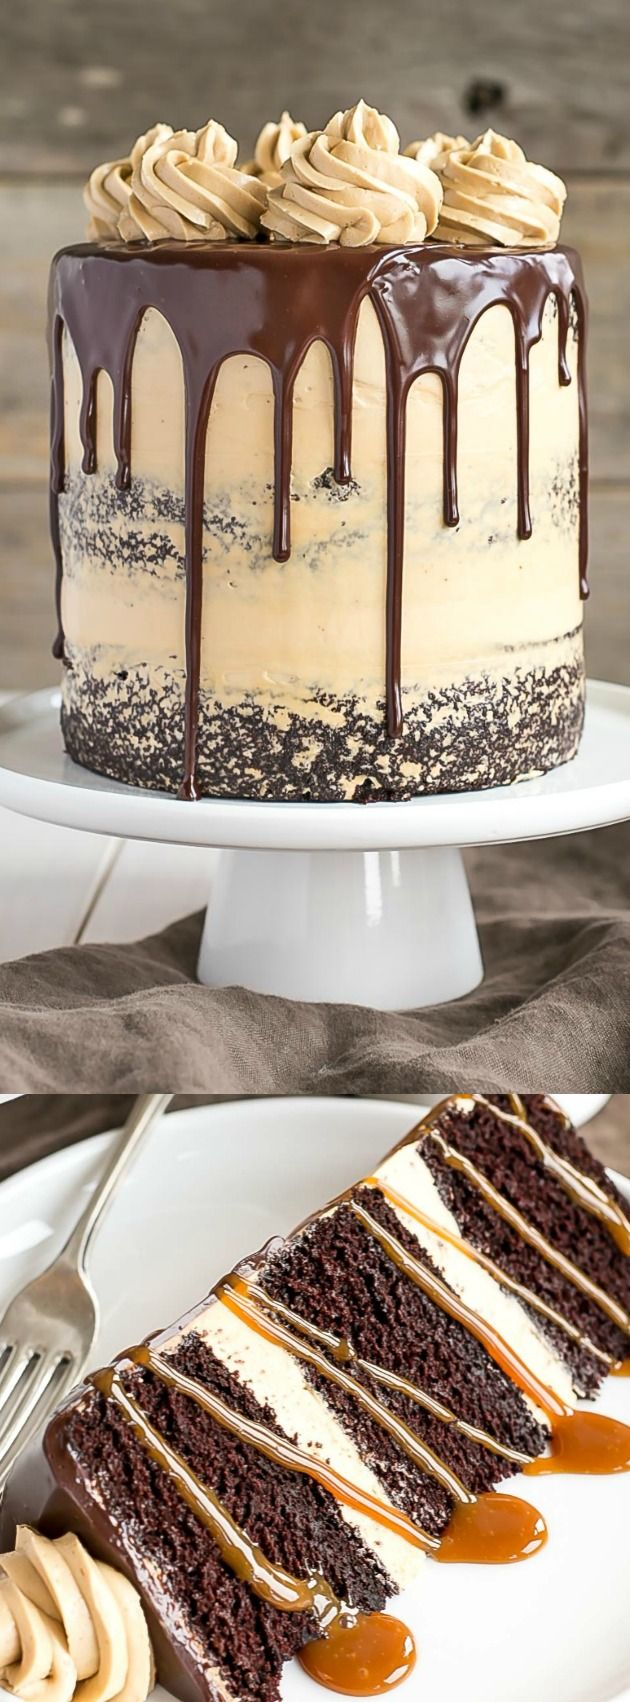 ThisChocolate Dulce De Leche CakefromLiv for Cakehas the ultimate combination of chocolate and caramel! The rich chocolate cake is layered with silky caramel buttercream and drizzled dulce de leche!